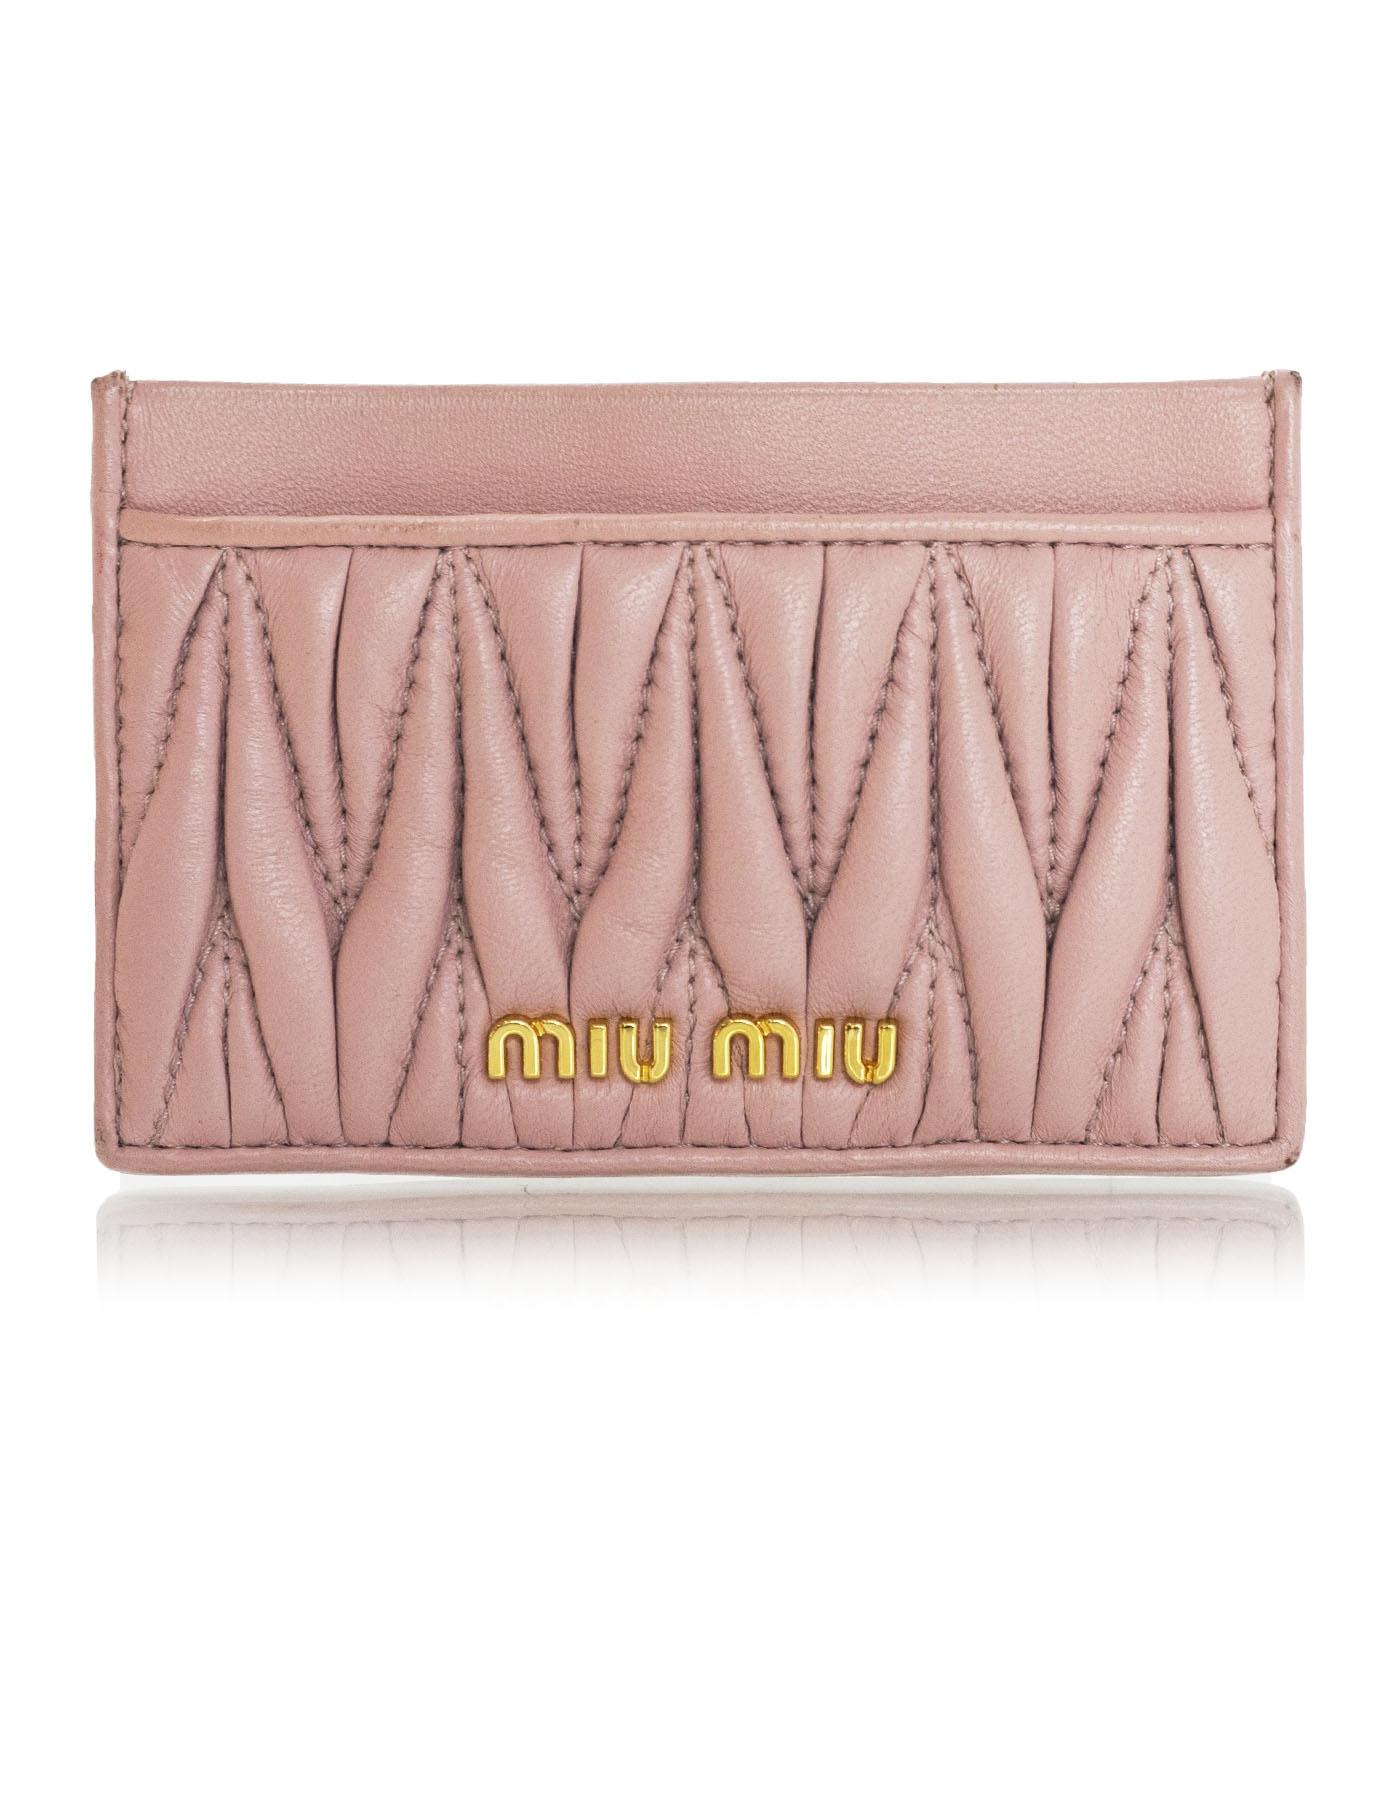 VIDA Leather Statement Clutch - CALIDO COLLECTION/GRC by VIDA